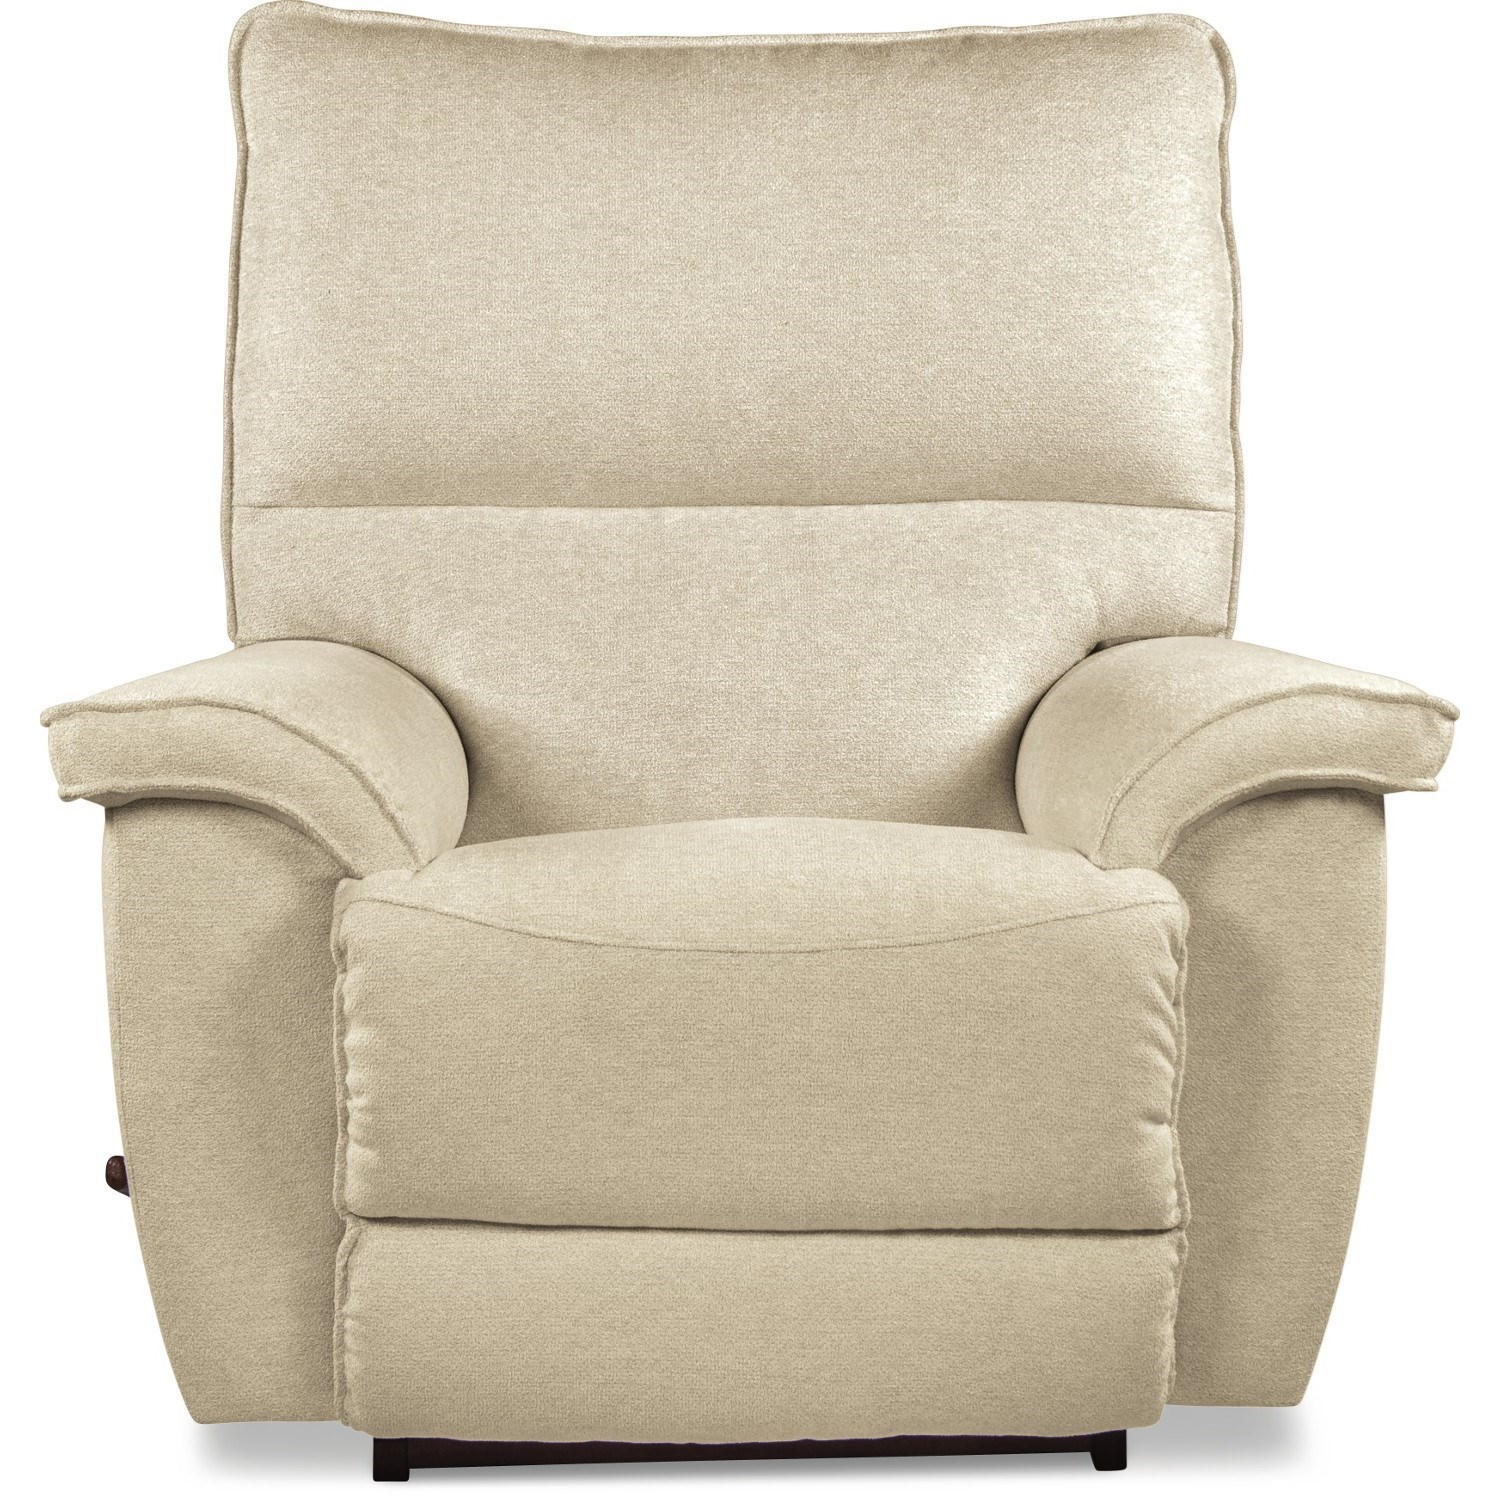 Norris Power Rocking Recliner by La-Z-Boy at Novello Home Furnishings